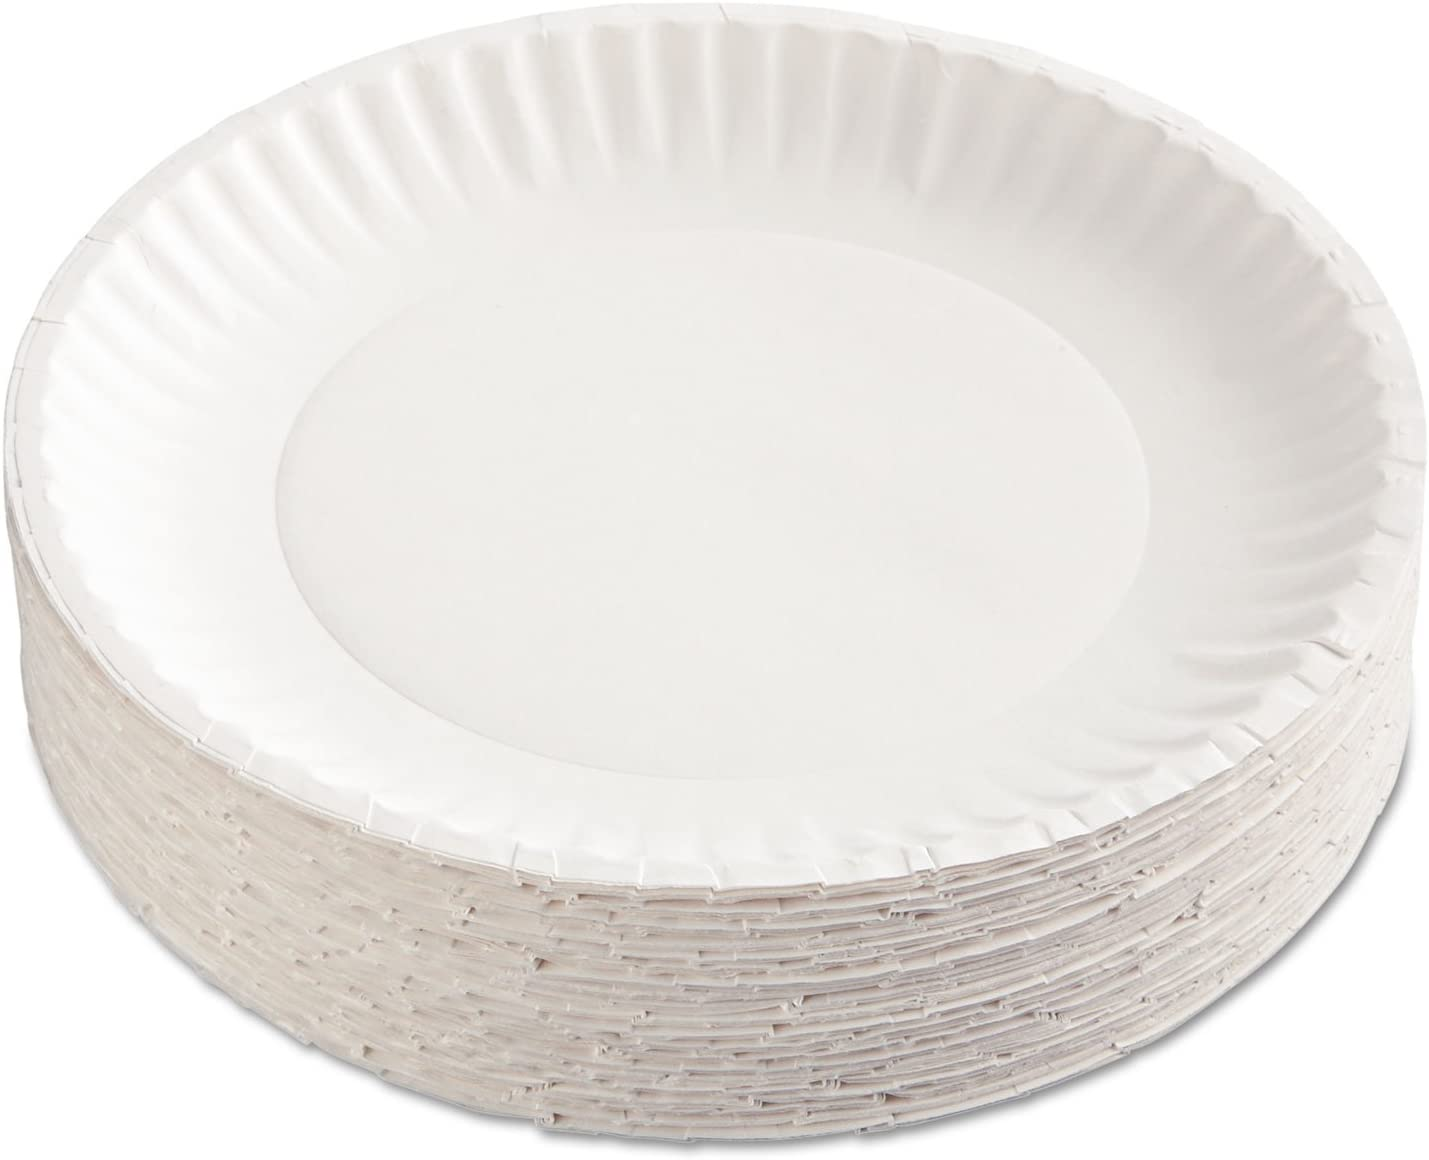 AJMCP9GOEWH - Gold security 35% OFF Label Coated Paper Plates